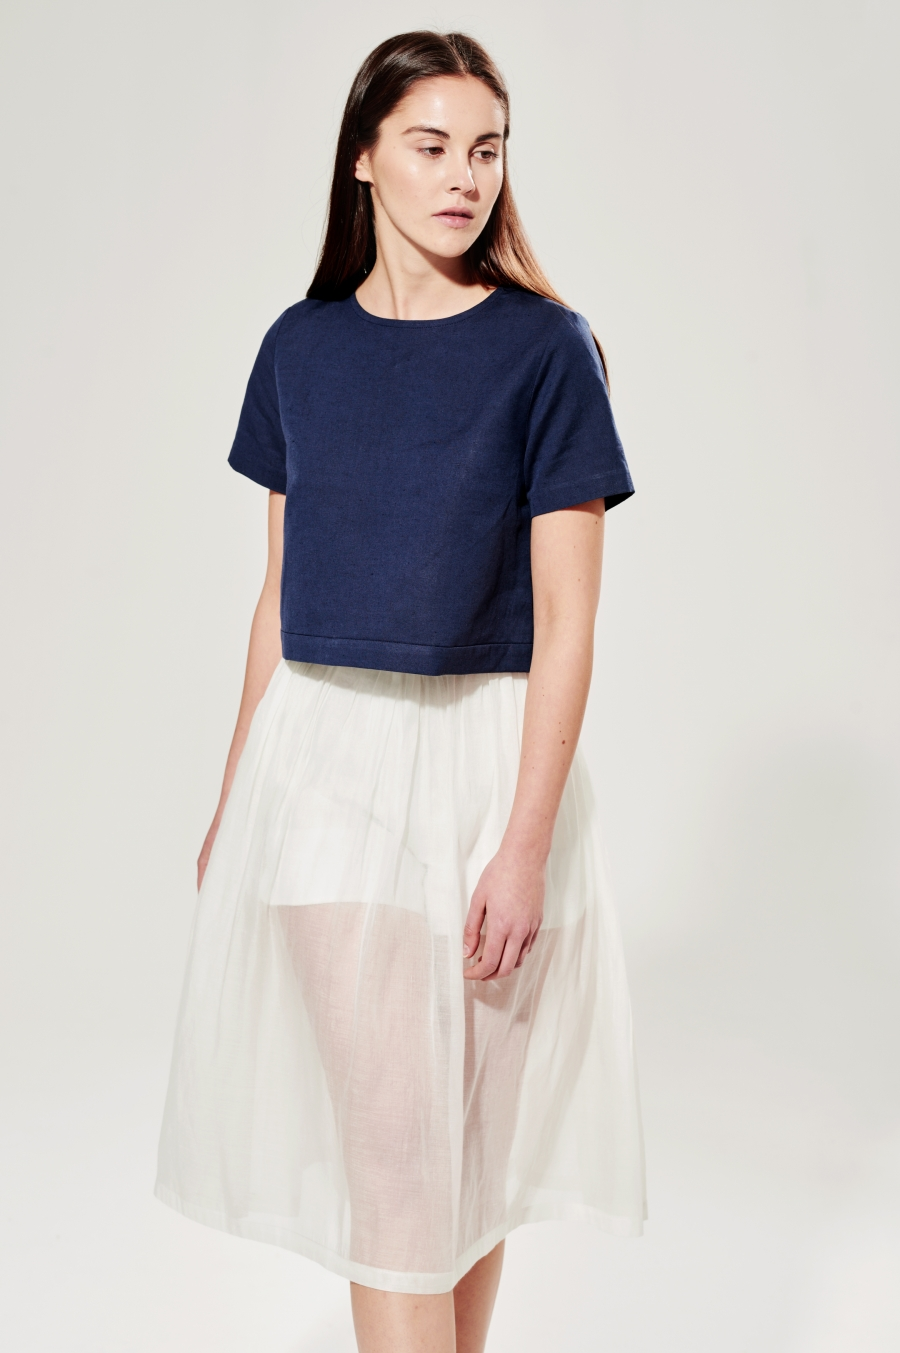 navy blue top scaled